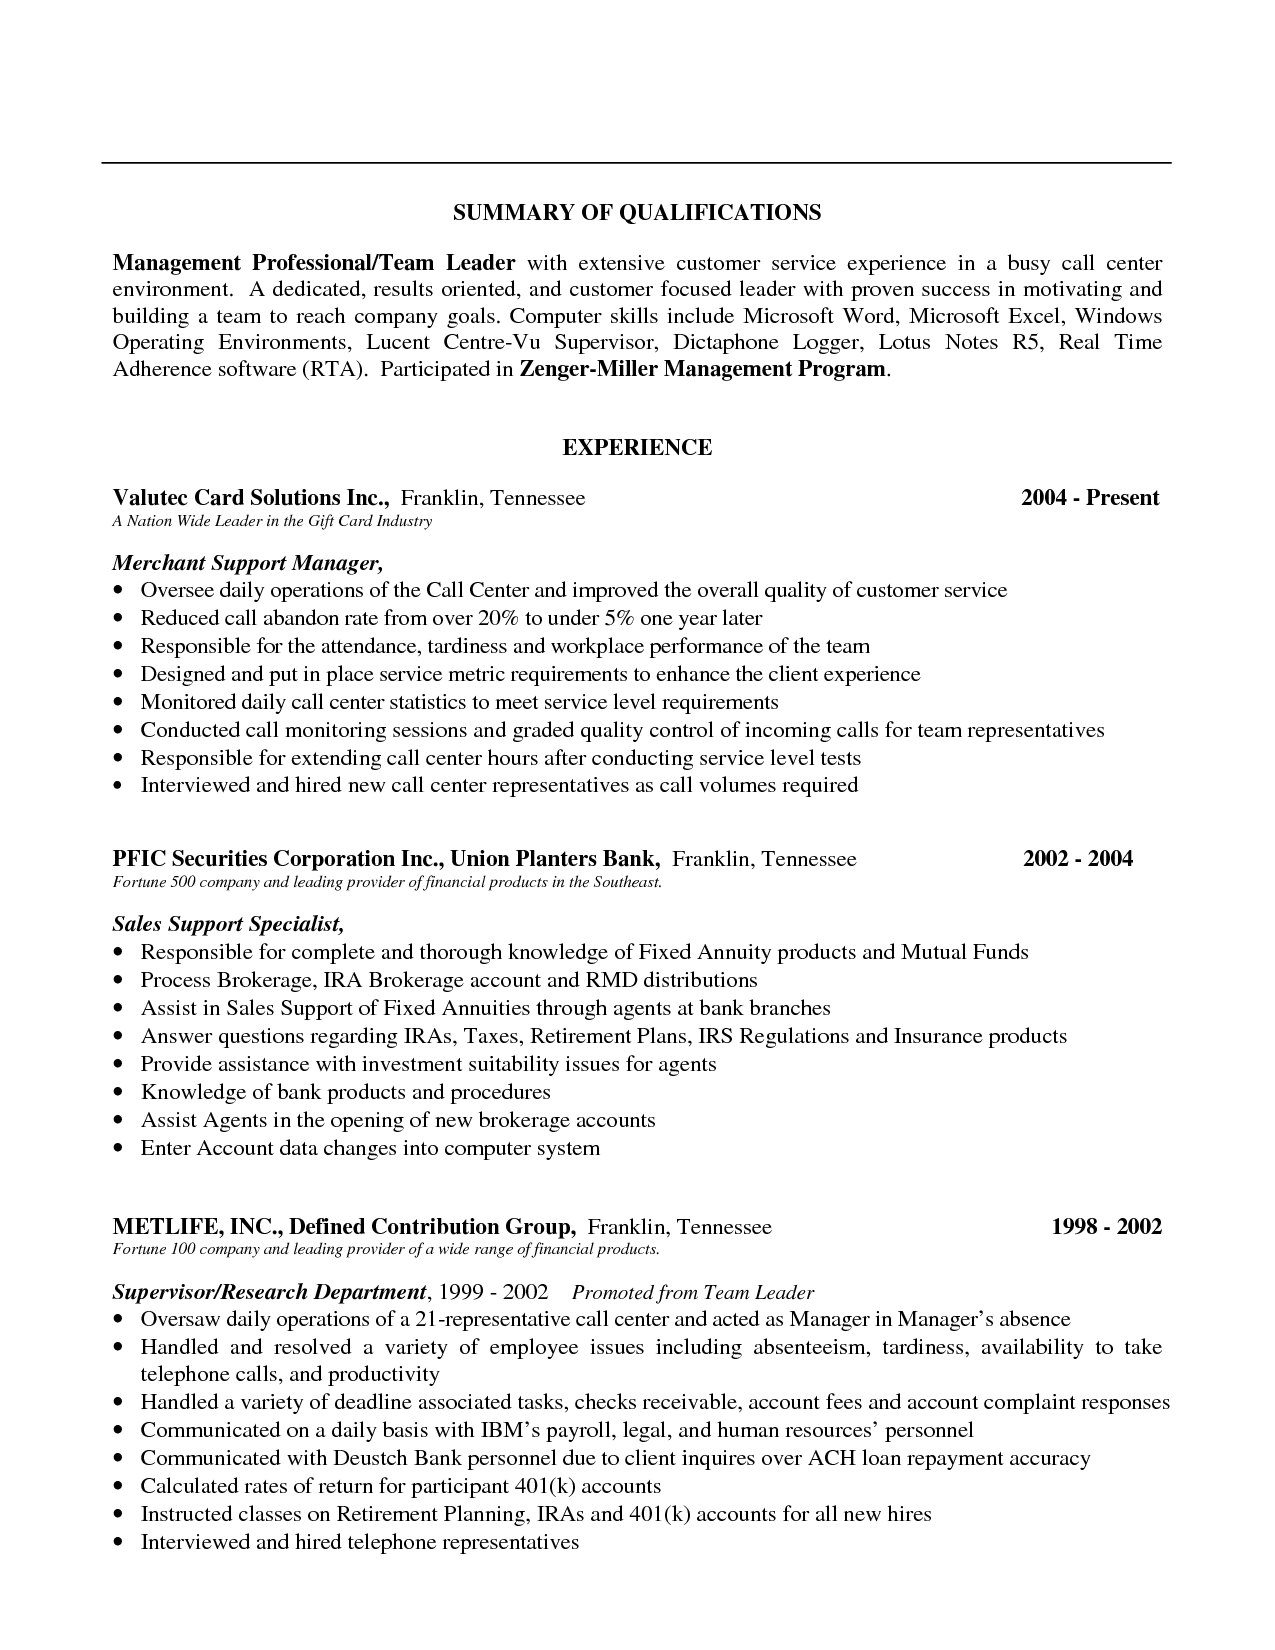 Doc Sample Resumes Summary Qualifications Buyer Resume Statement